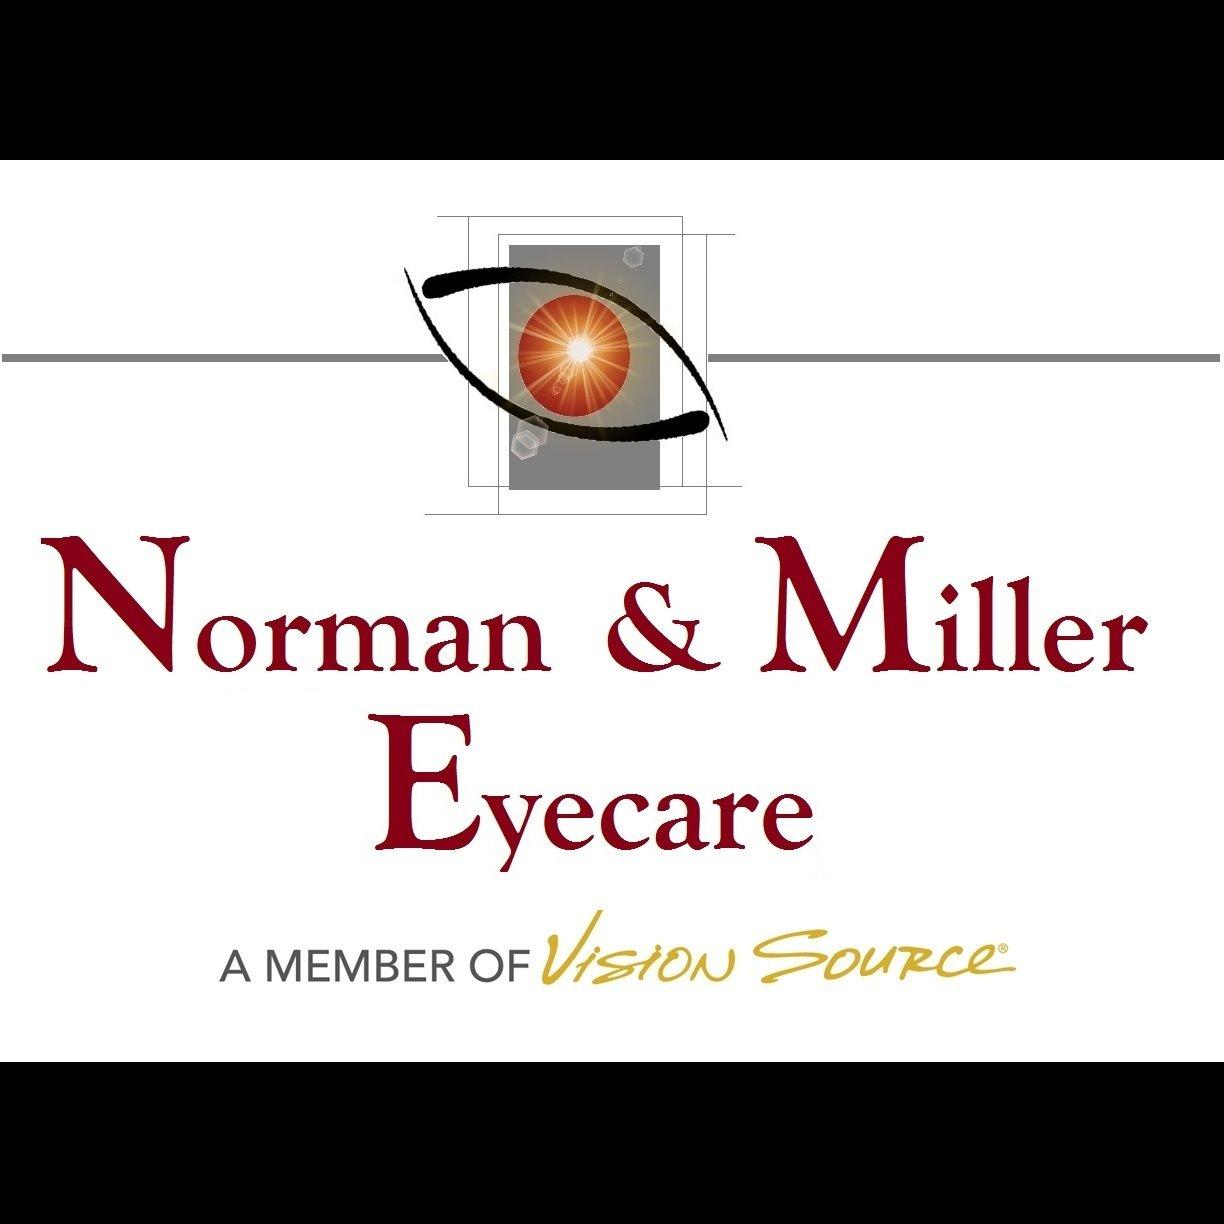 Norman and Miller Eyecare